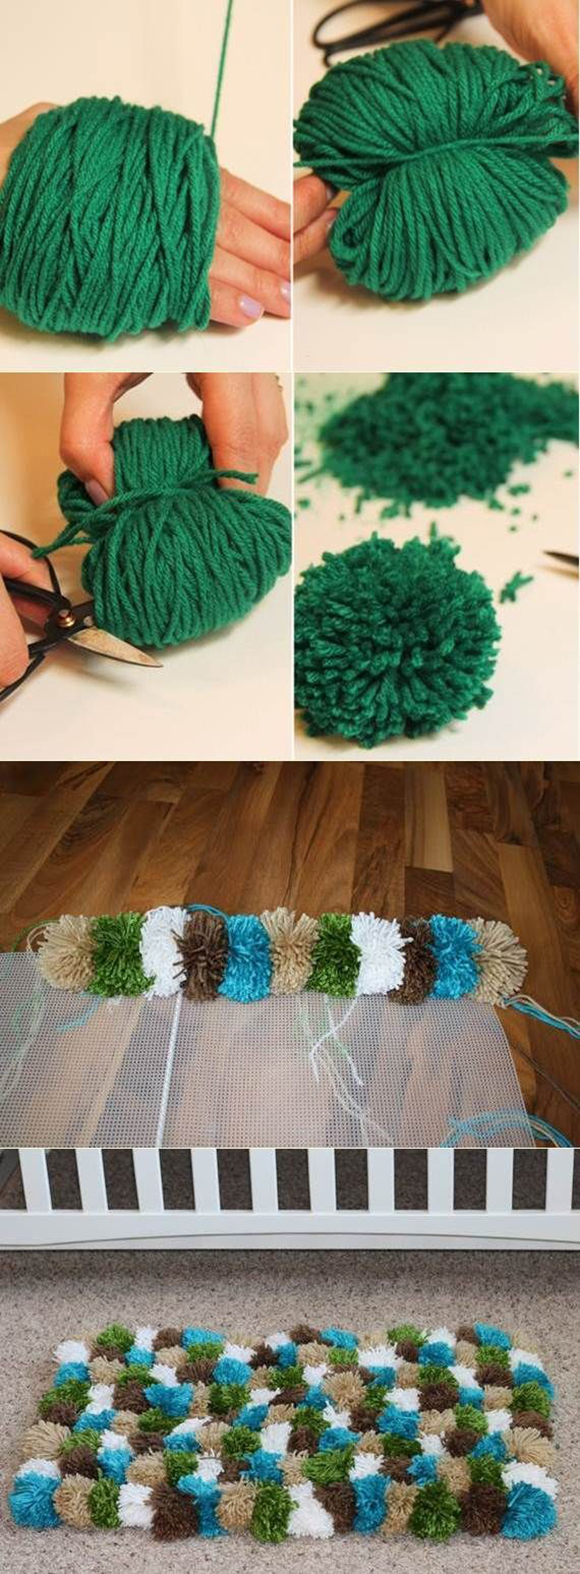 DIY Pom-Pom Decorations11